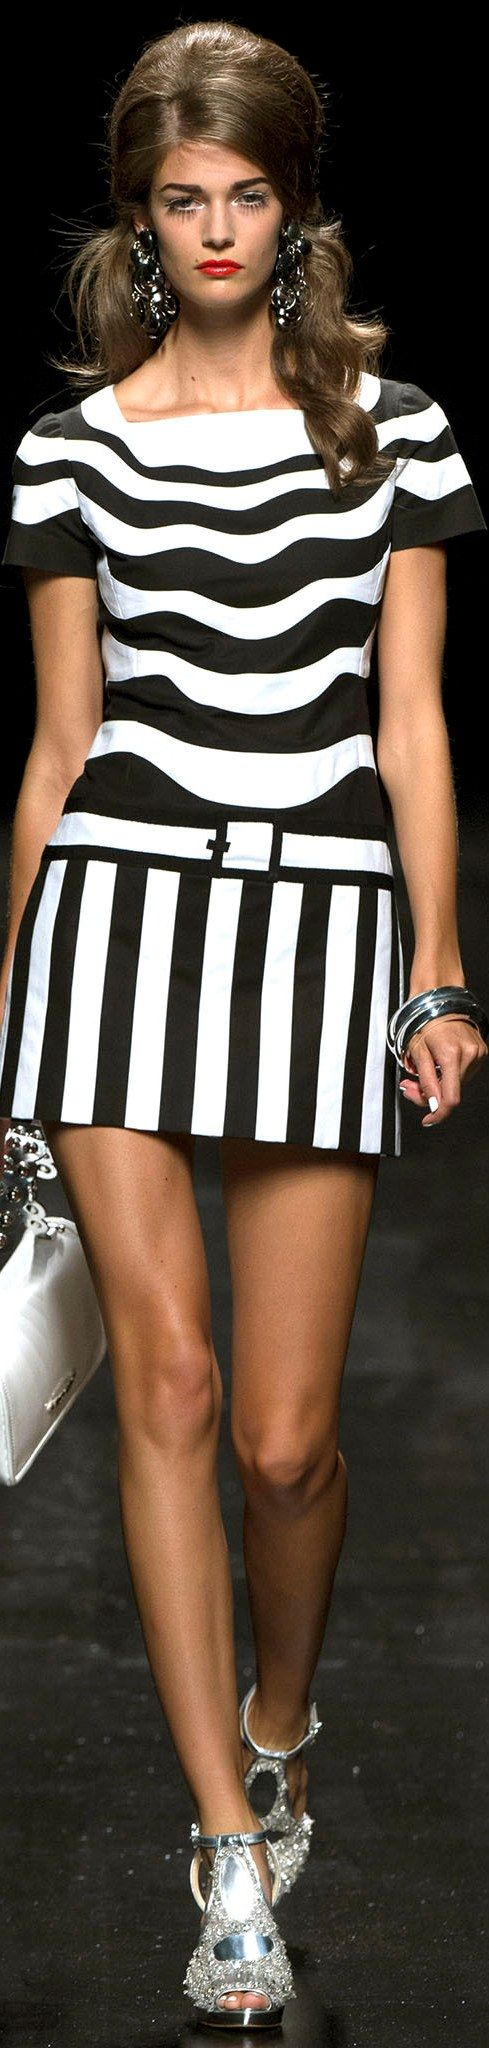 Moschino Ready to Wear Spring striped dress women fashion outfit clothing style apparel @roressclothes closet ideas